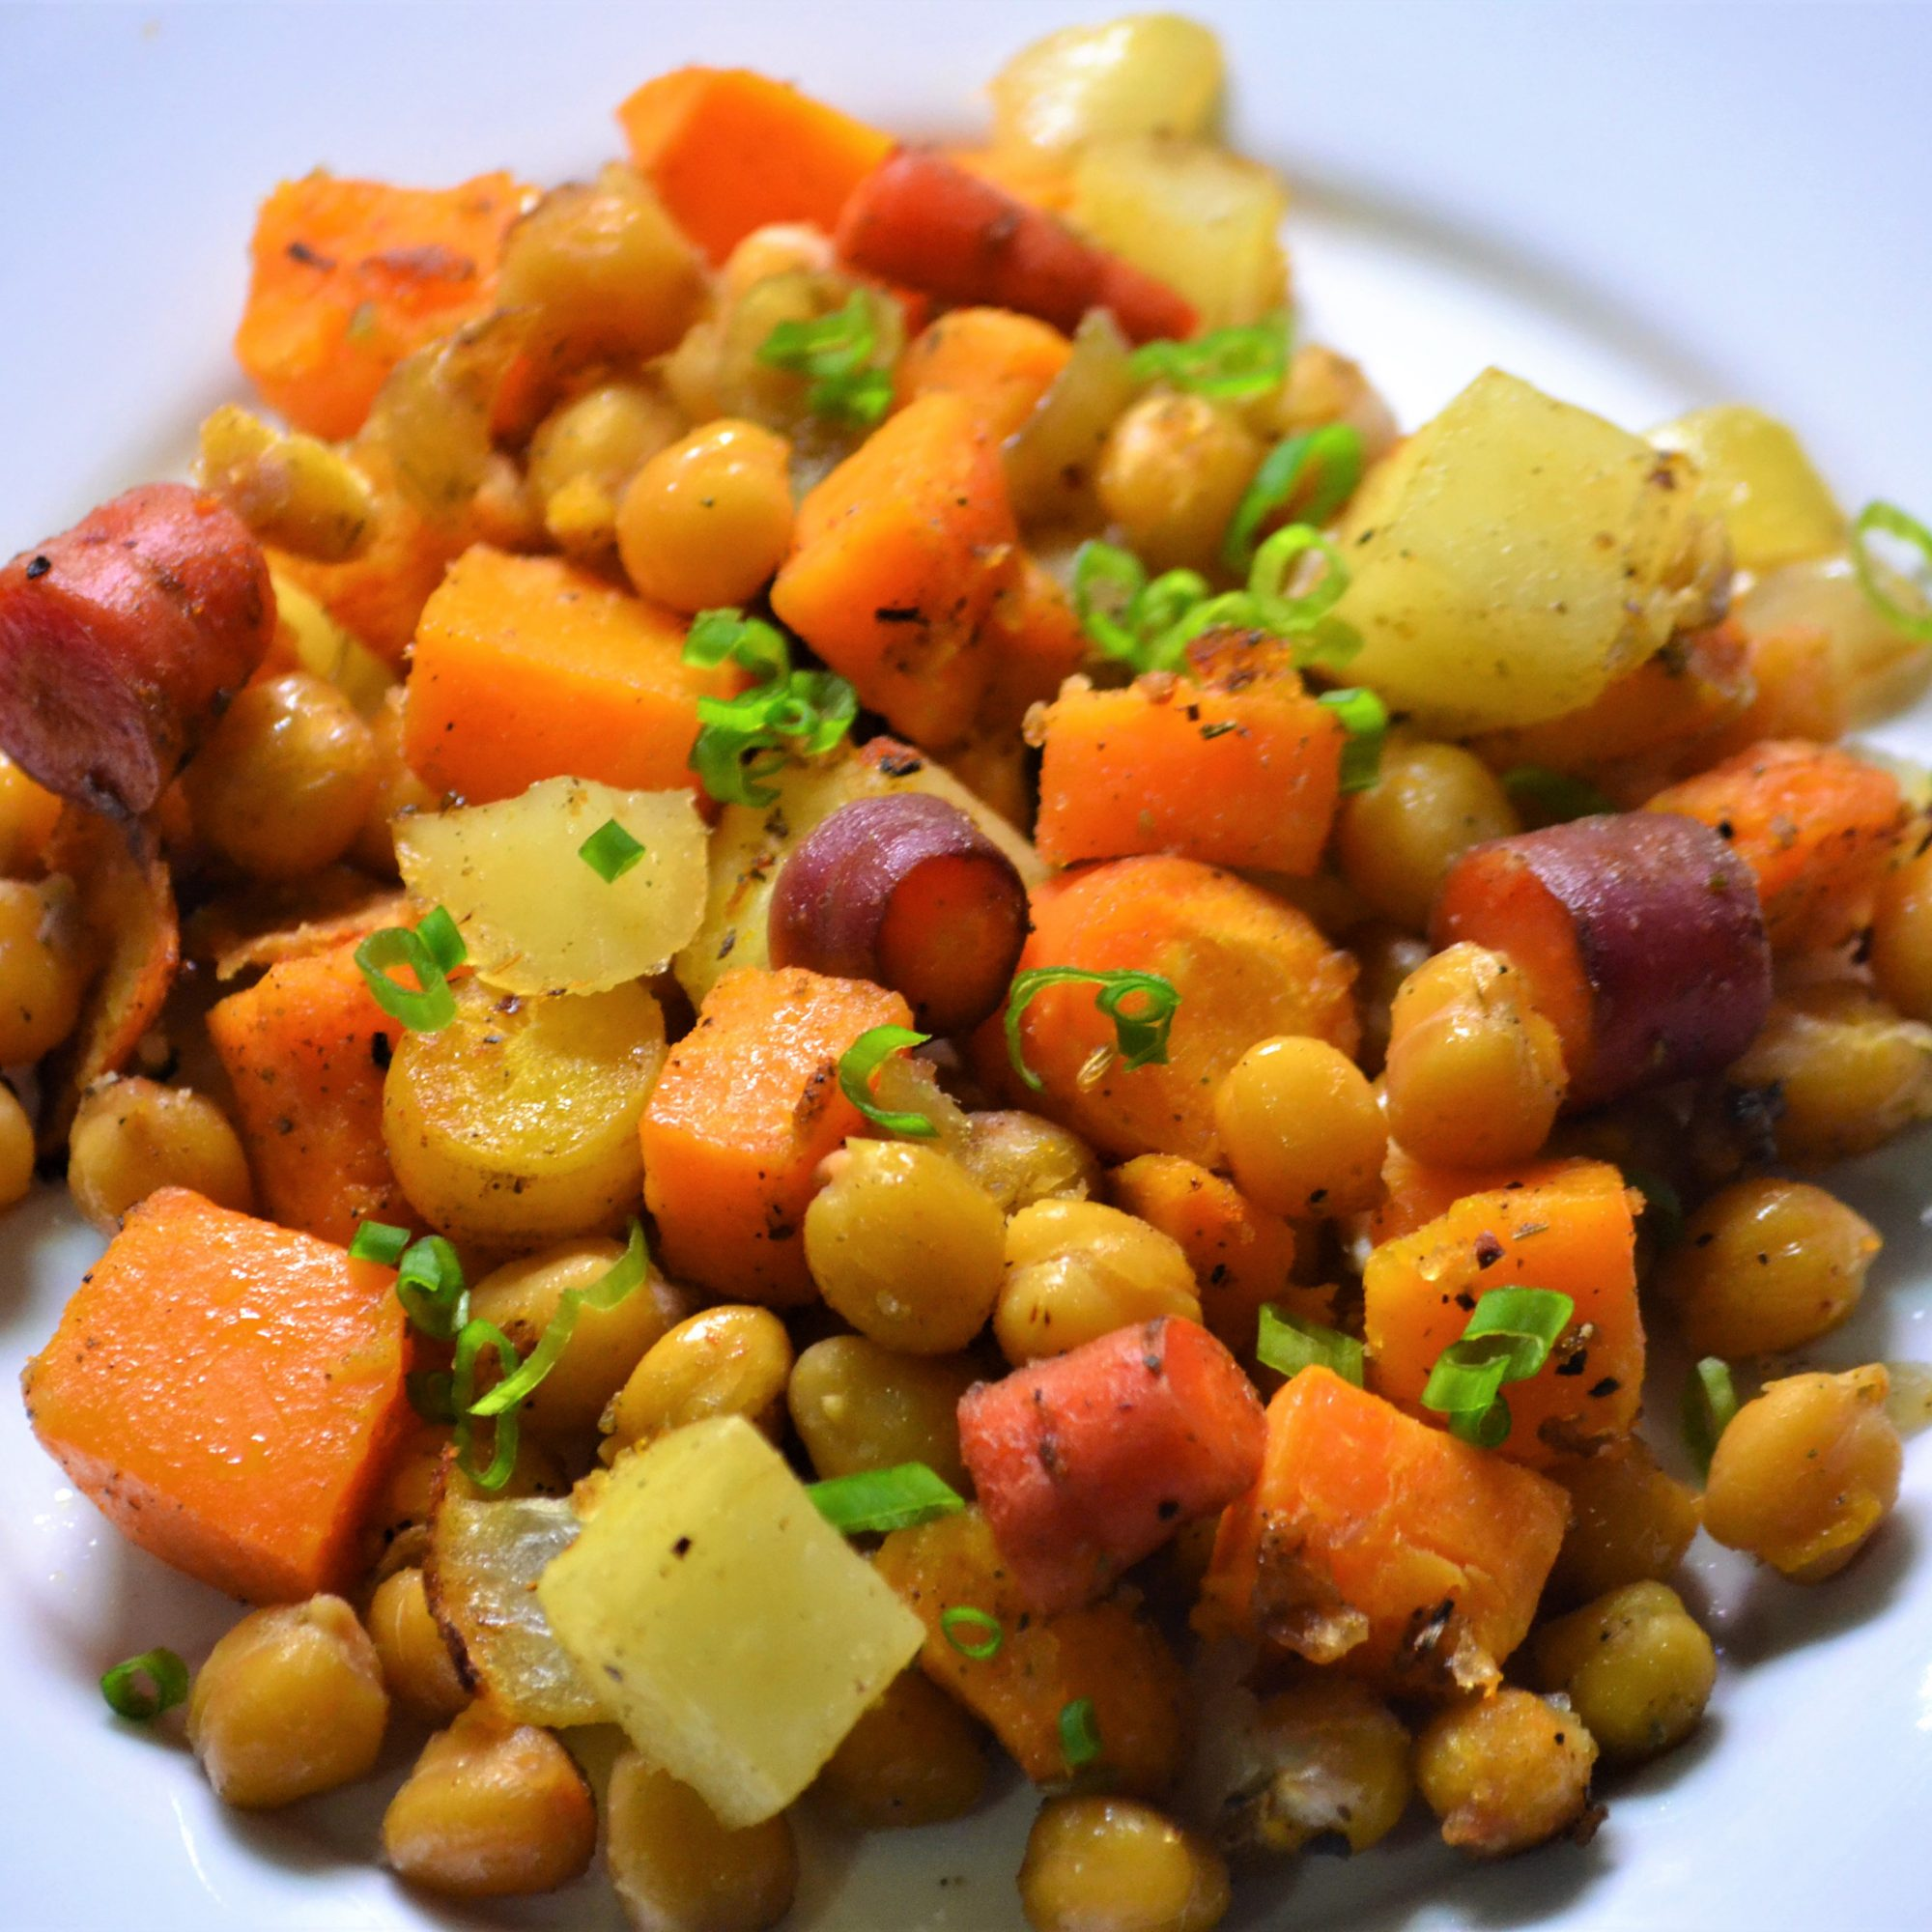 close up of roasted chickpeas and vegetables